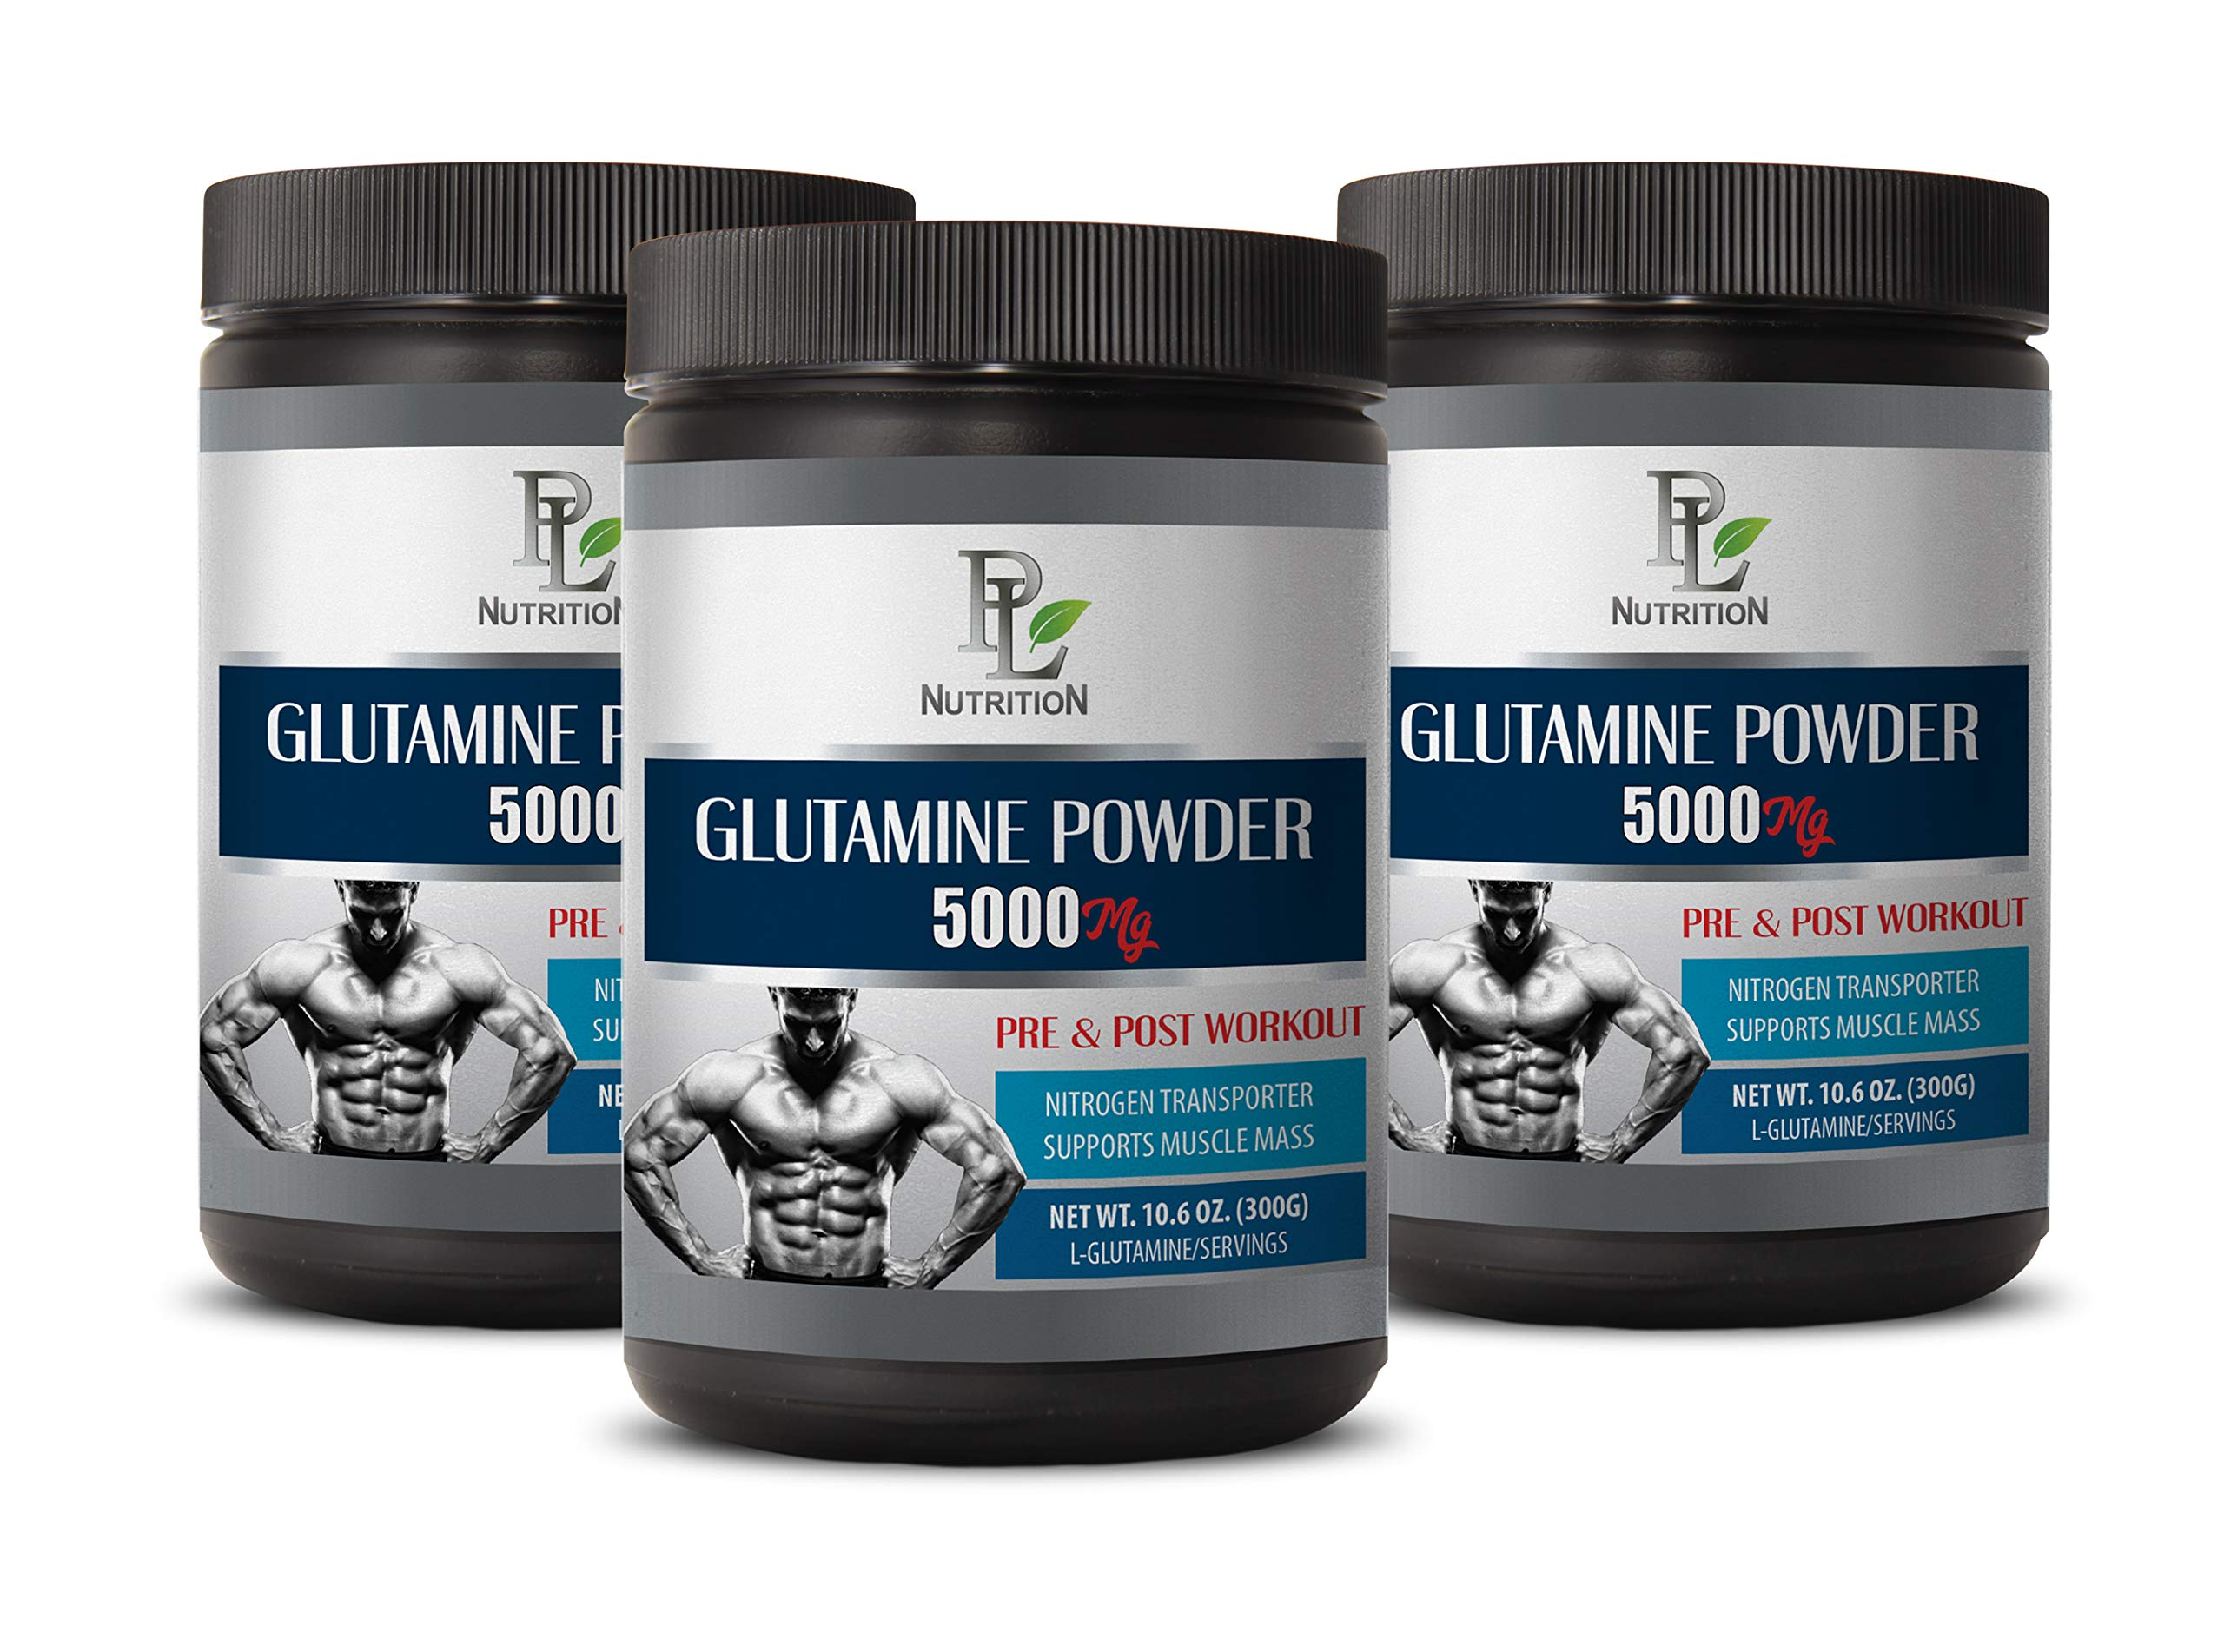 Post Workout Recovery - L-GLUTAMINE Powder 5000 MG - PRE & Post Workout - l-glutamine Bulk - 3 Cans 900 Grams